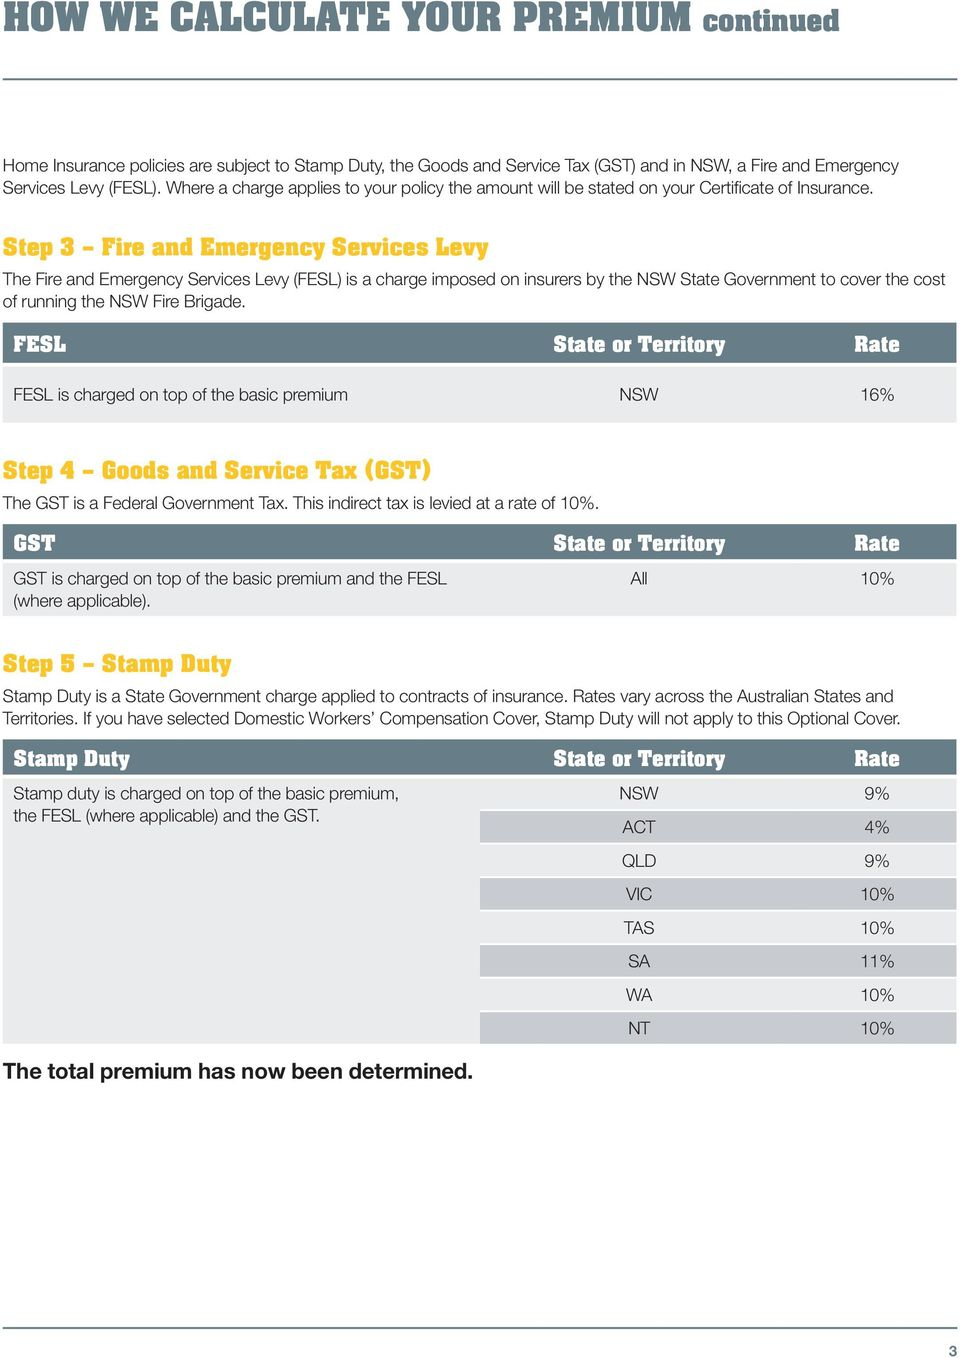 Step 3 Fire and Emergency Services Levy The Fire and Emergency Services Levy (FESL) is a charge imposed on insurers by the NSW State Government to cover the cost of running the NSW Fire Brigade.